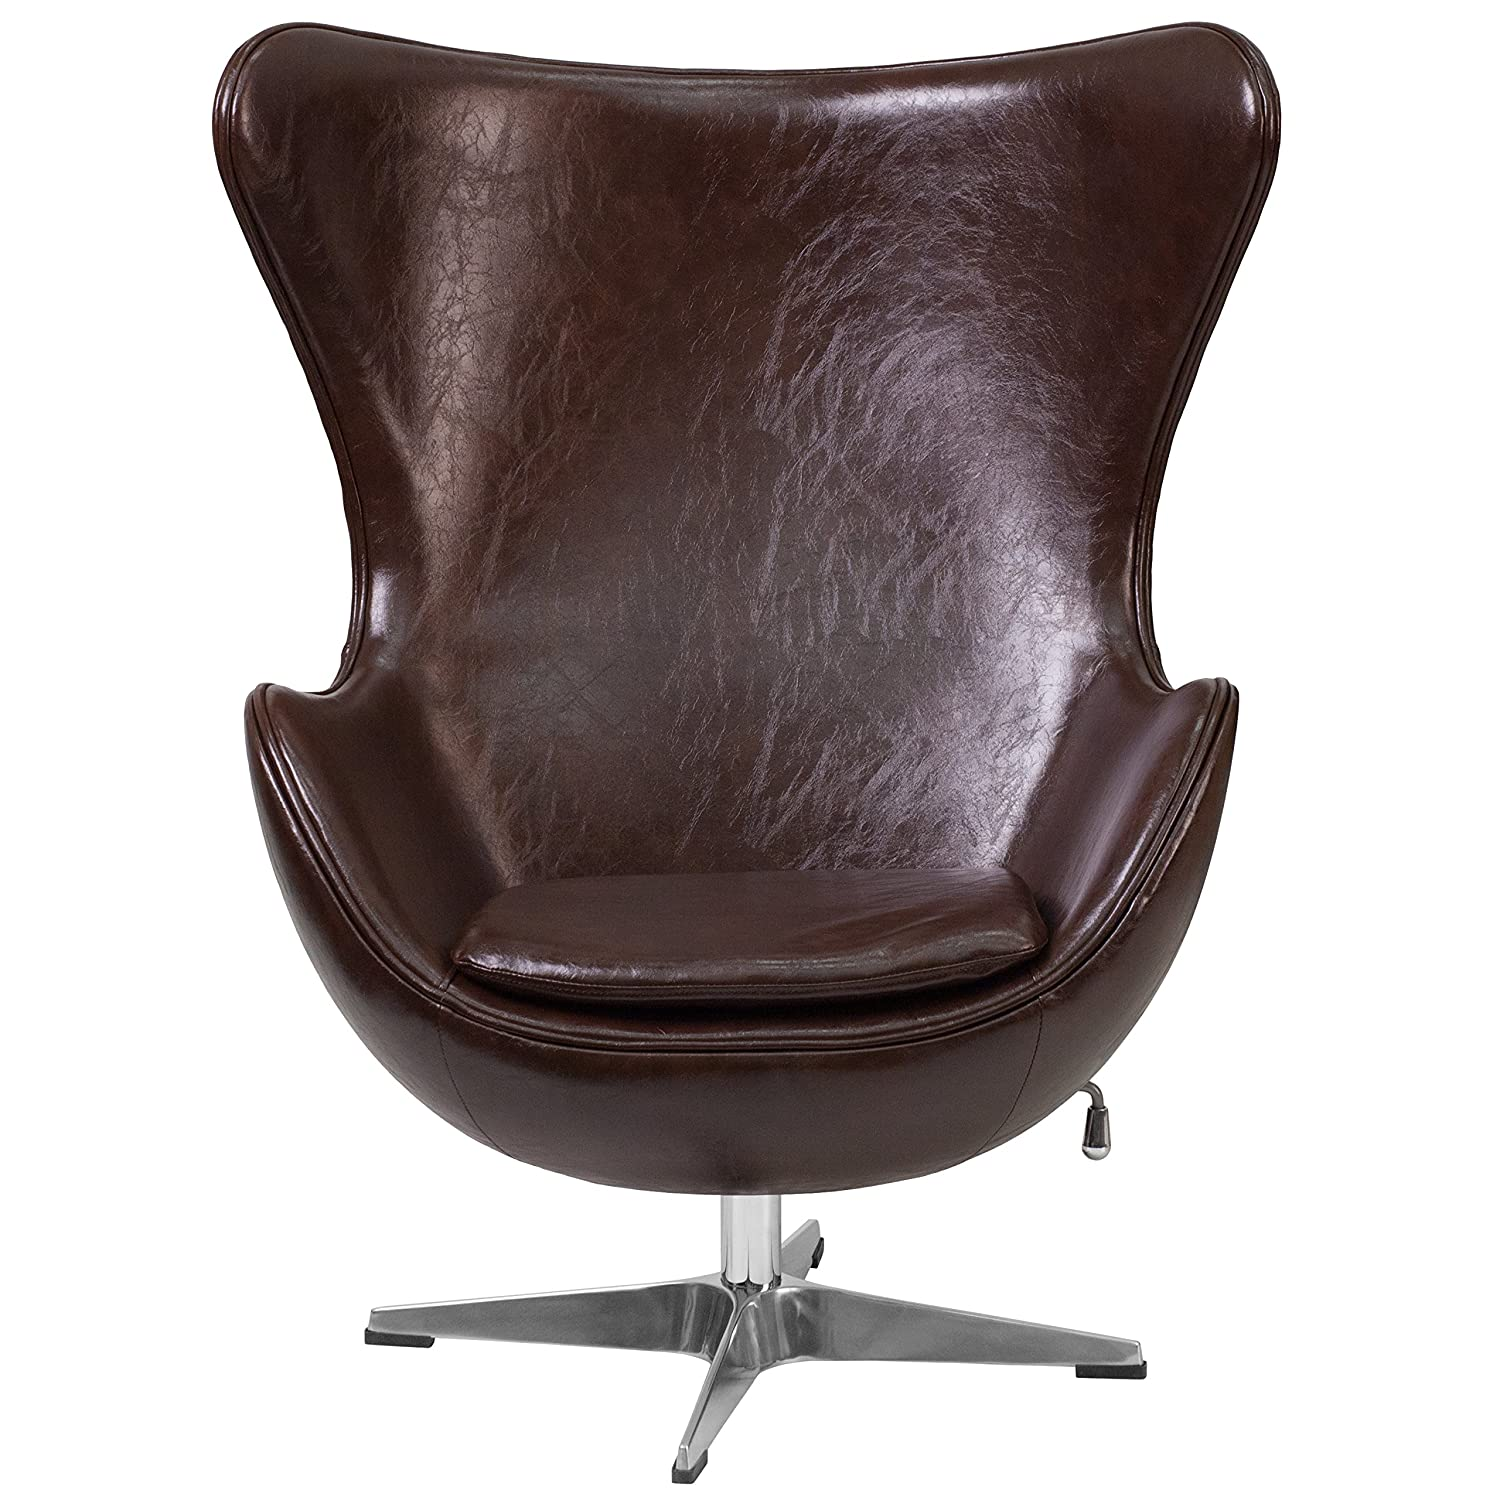 Amazon.com: Flash Furniture Brown Leather Egg Chair With Tilt Lock  Mechanism: Kitchen U0026 Dining